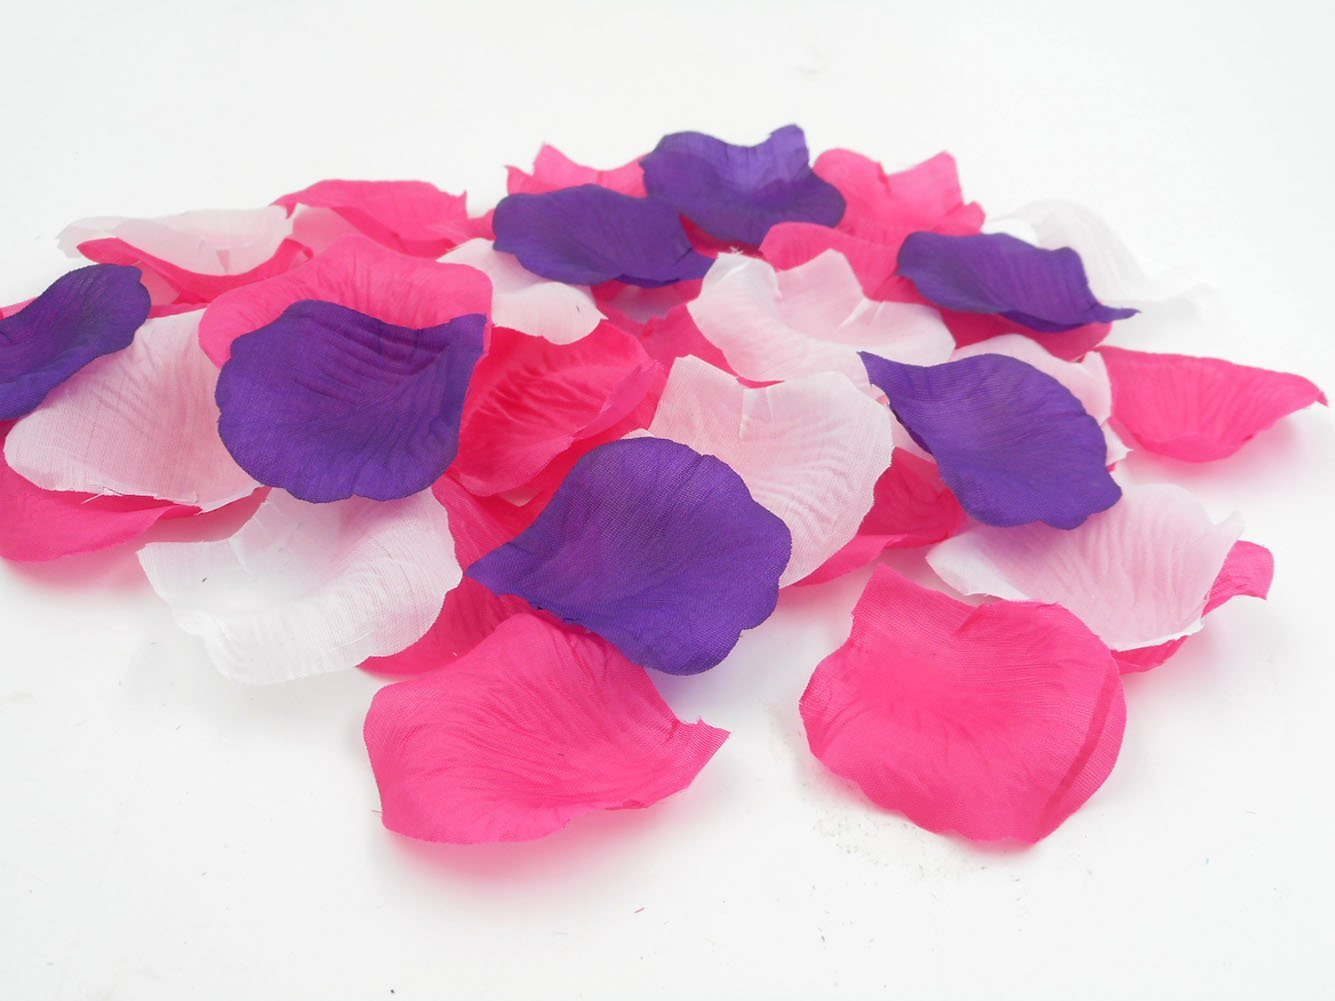 Cheap flower petals pink find flower petals pink deals on line at get quotations 3000pcs artificial fabric silk rose flower petals for weddings bulk dark purple hot pink white bridal mightylinksfo